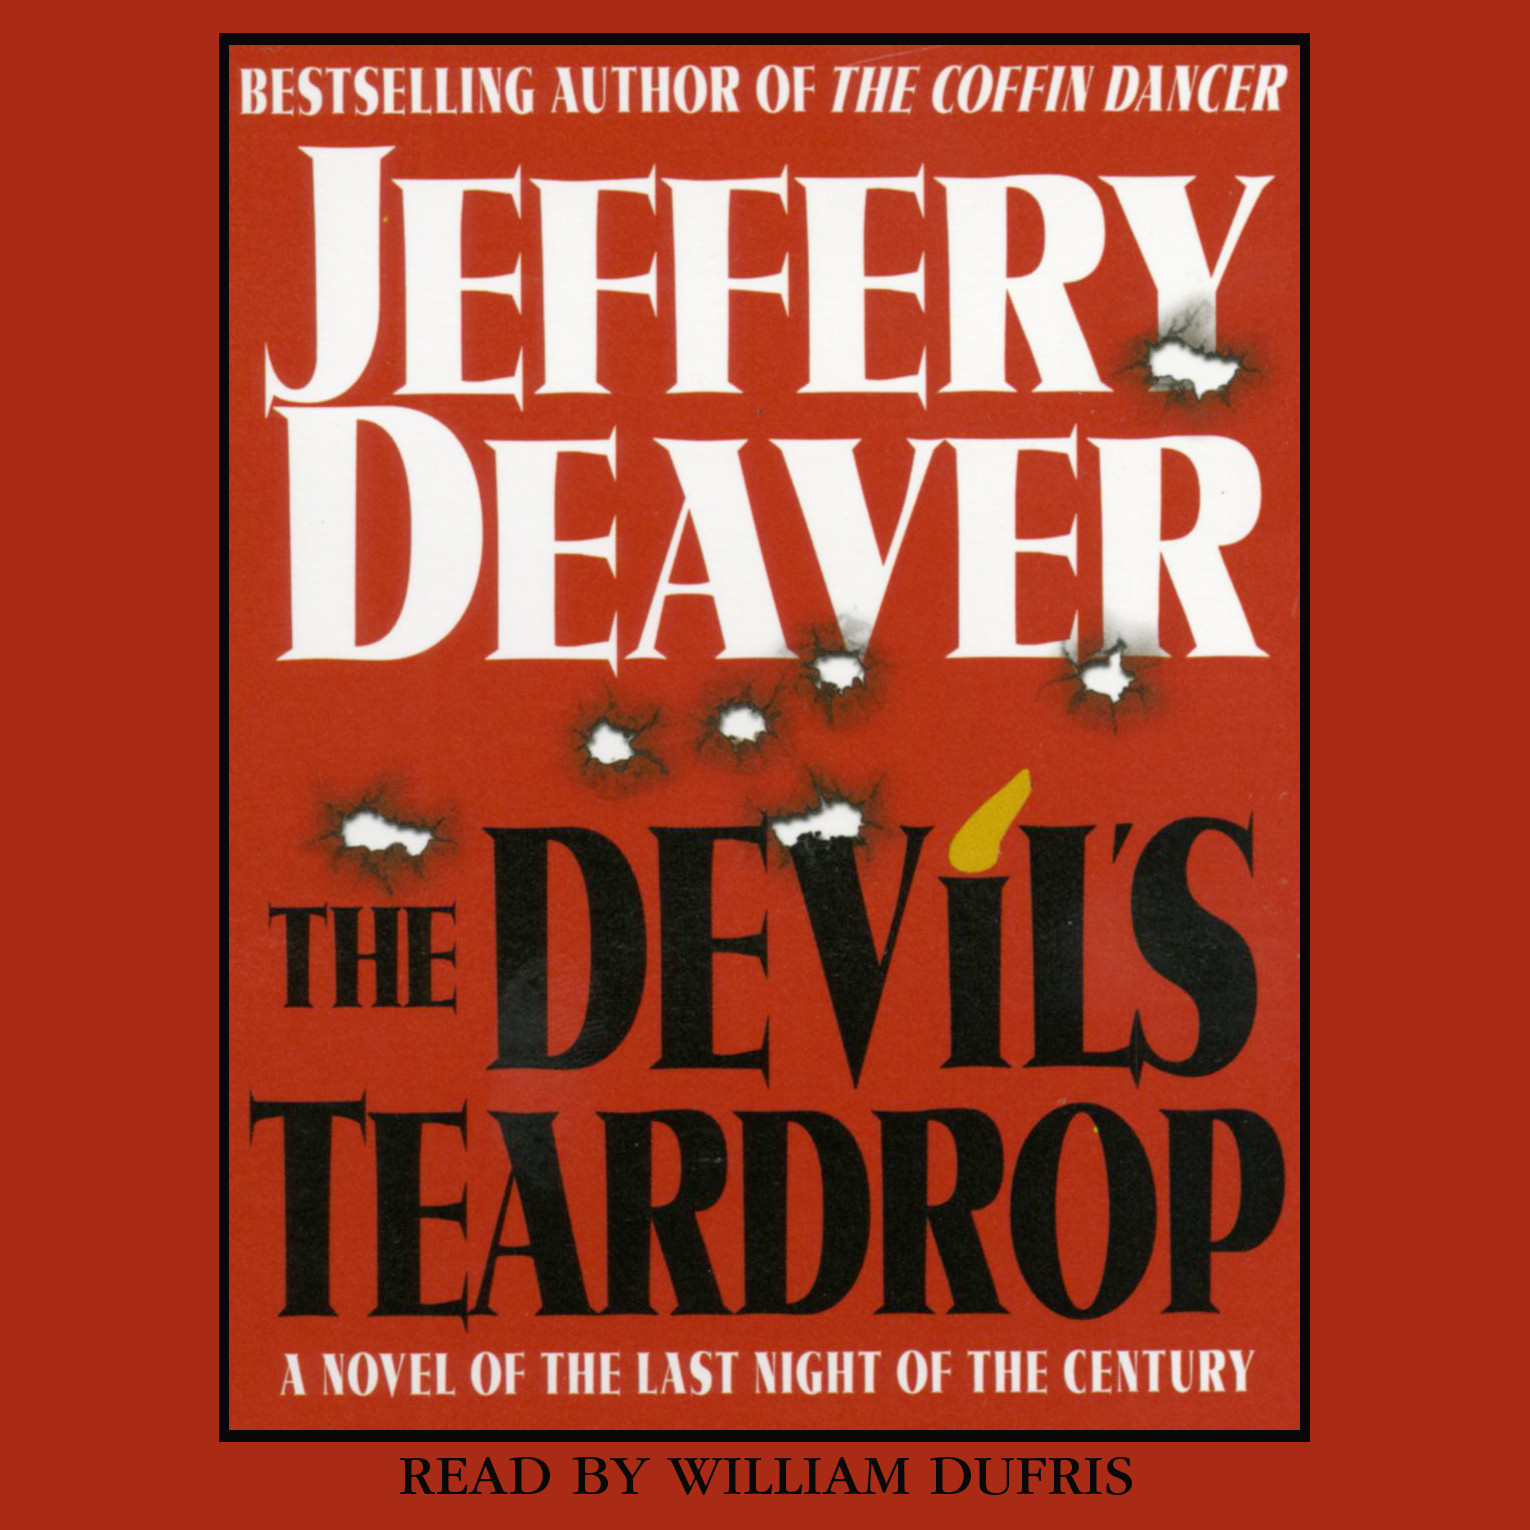 Printable Devil's Teardrop: A Novel of the Last Night of the Century Audiobook Cover Art